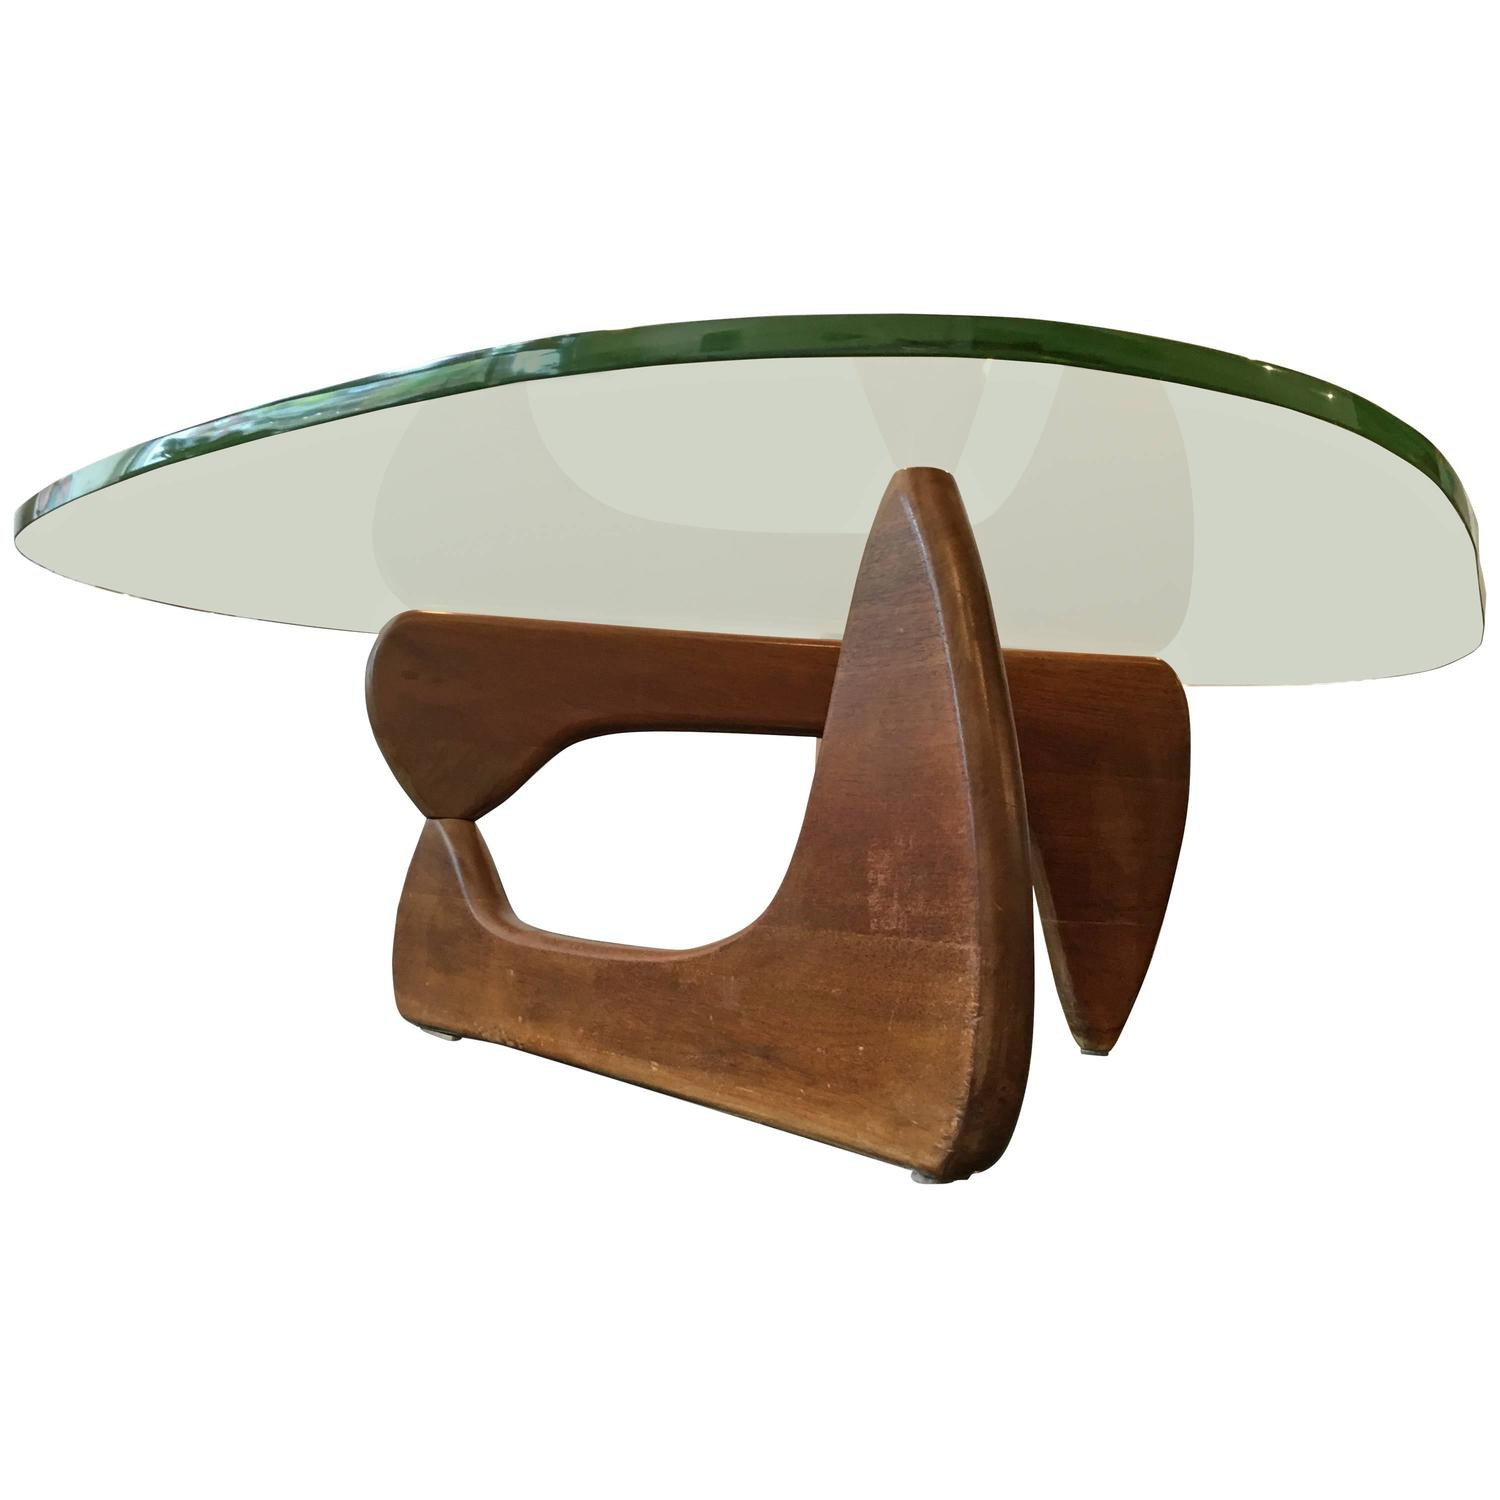 Rare early walnut isamu noguchi coffee table herman miller 1947 at 1stdibs Herman miller noguchi coffee table